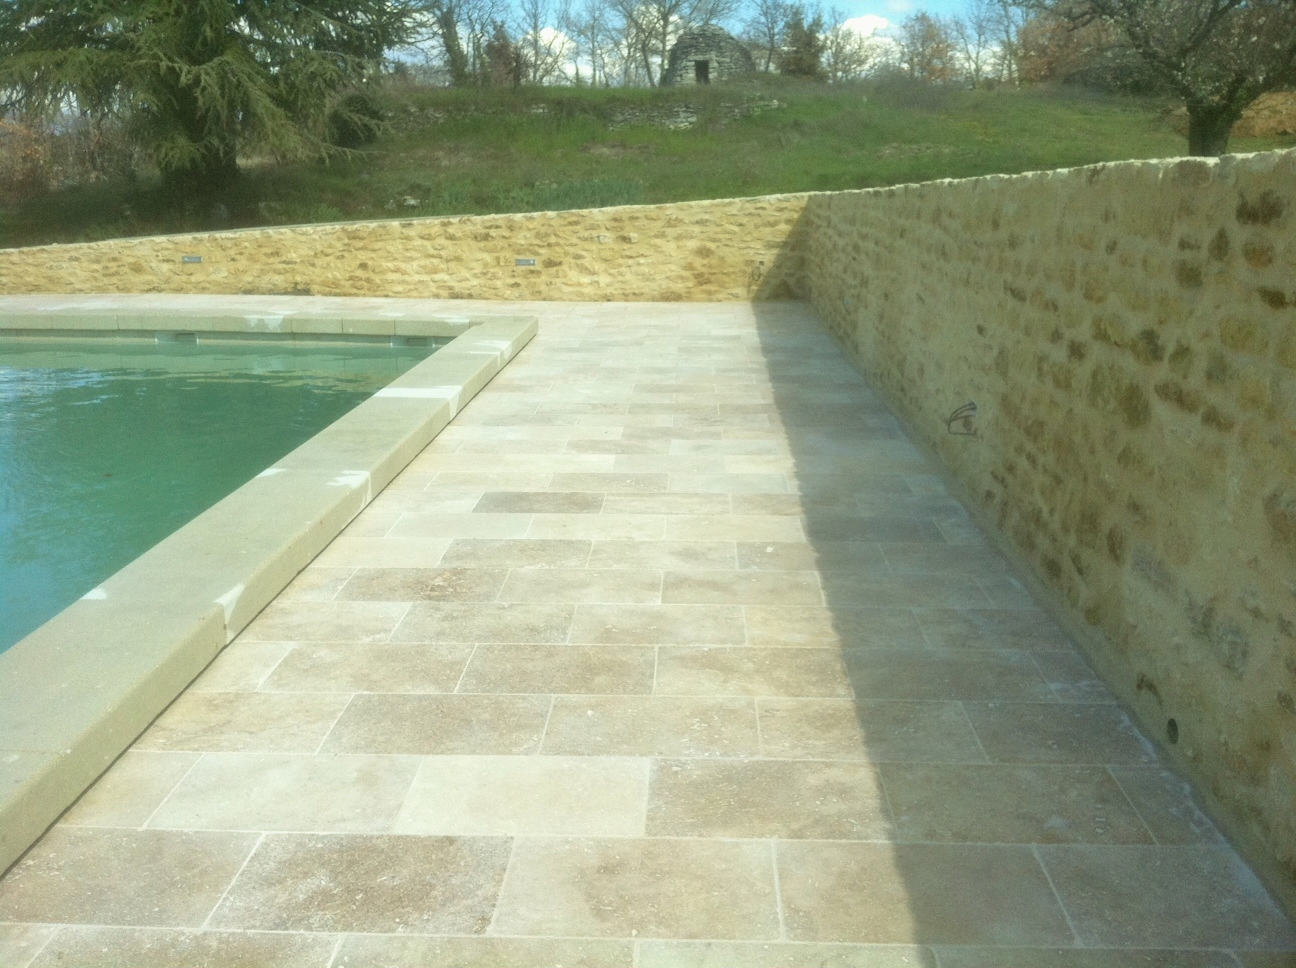 Terrasse travertin hydrofuge et imperm abilisant blog for Nettoyer terrasse carrelage